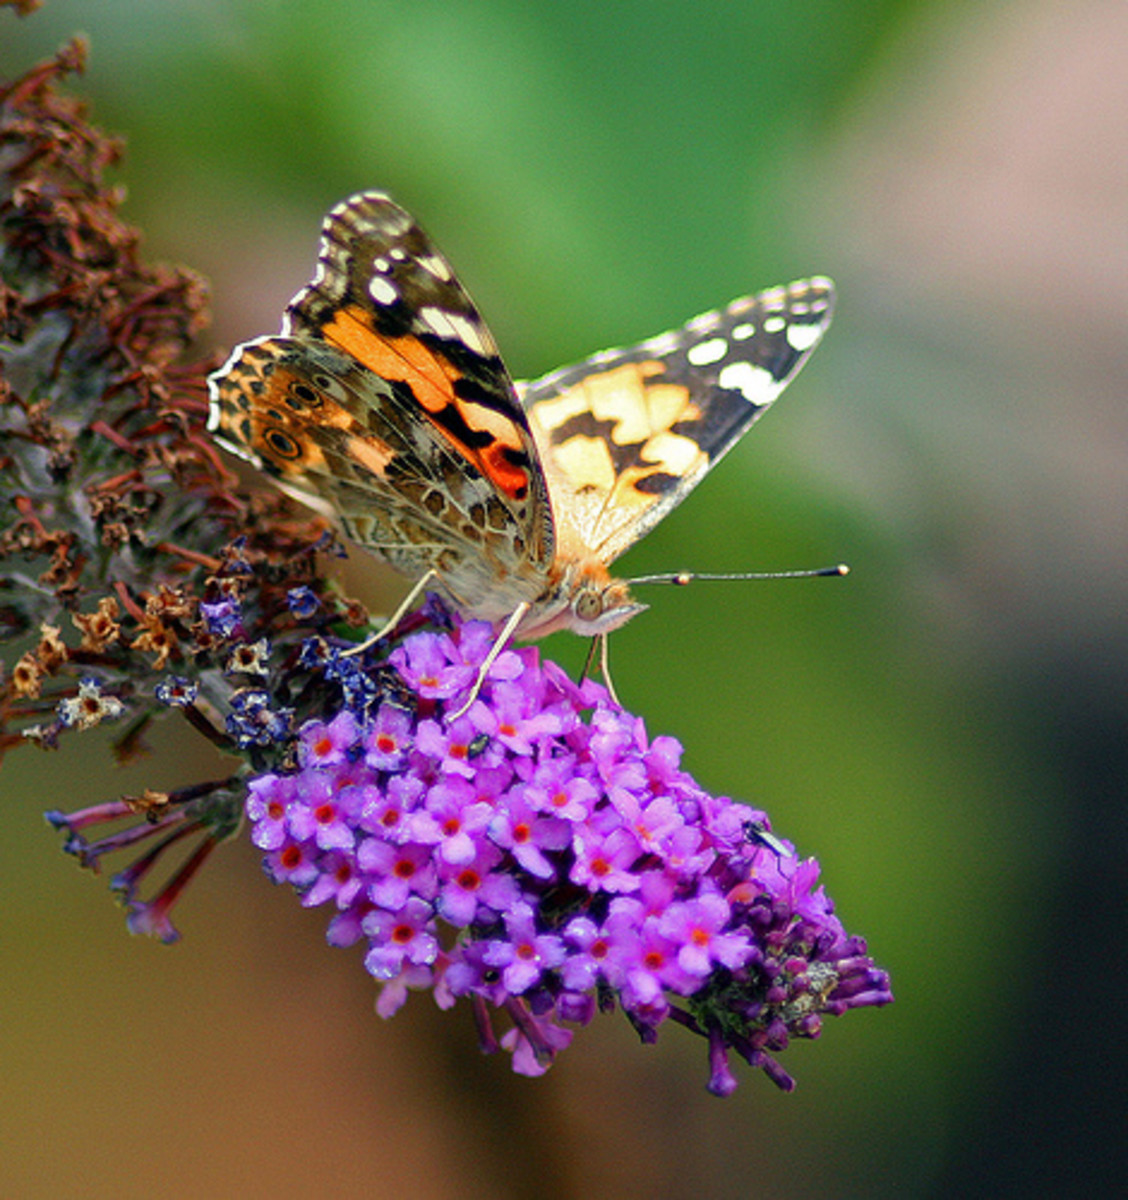 Painted Lady butterfly on Butterfly bush bloom (Buddleia). Bring Lepidoptera into your garden